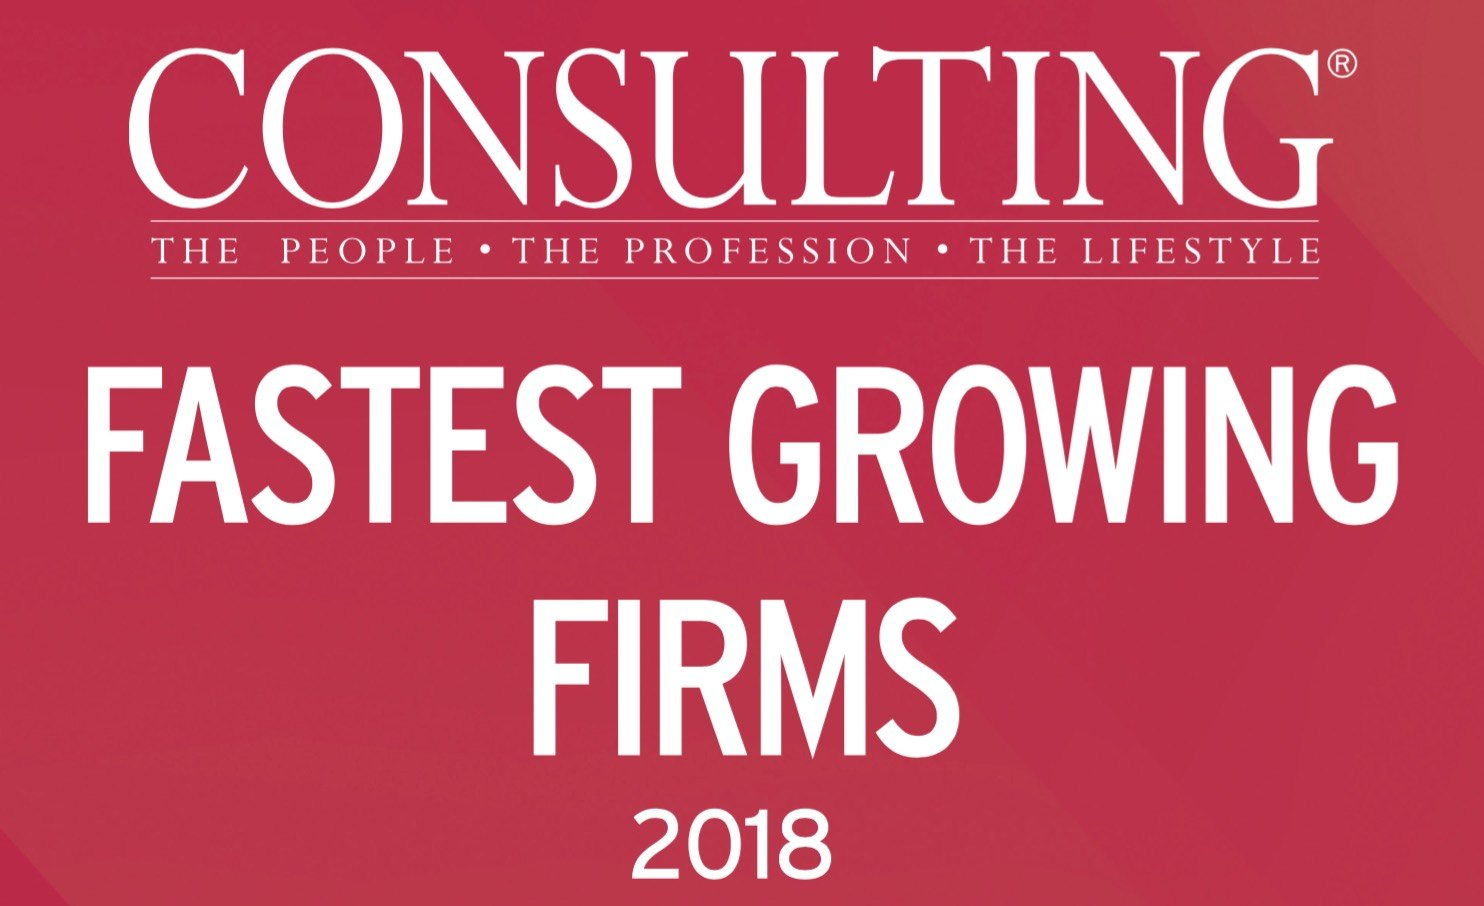 Consulting magazine Unveils the Profession's Fastest Growing Firms for 2018